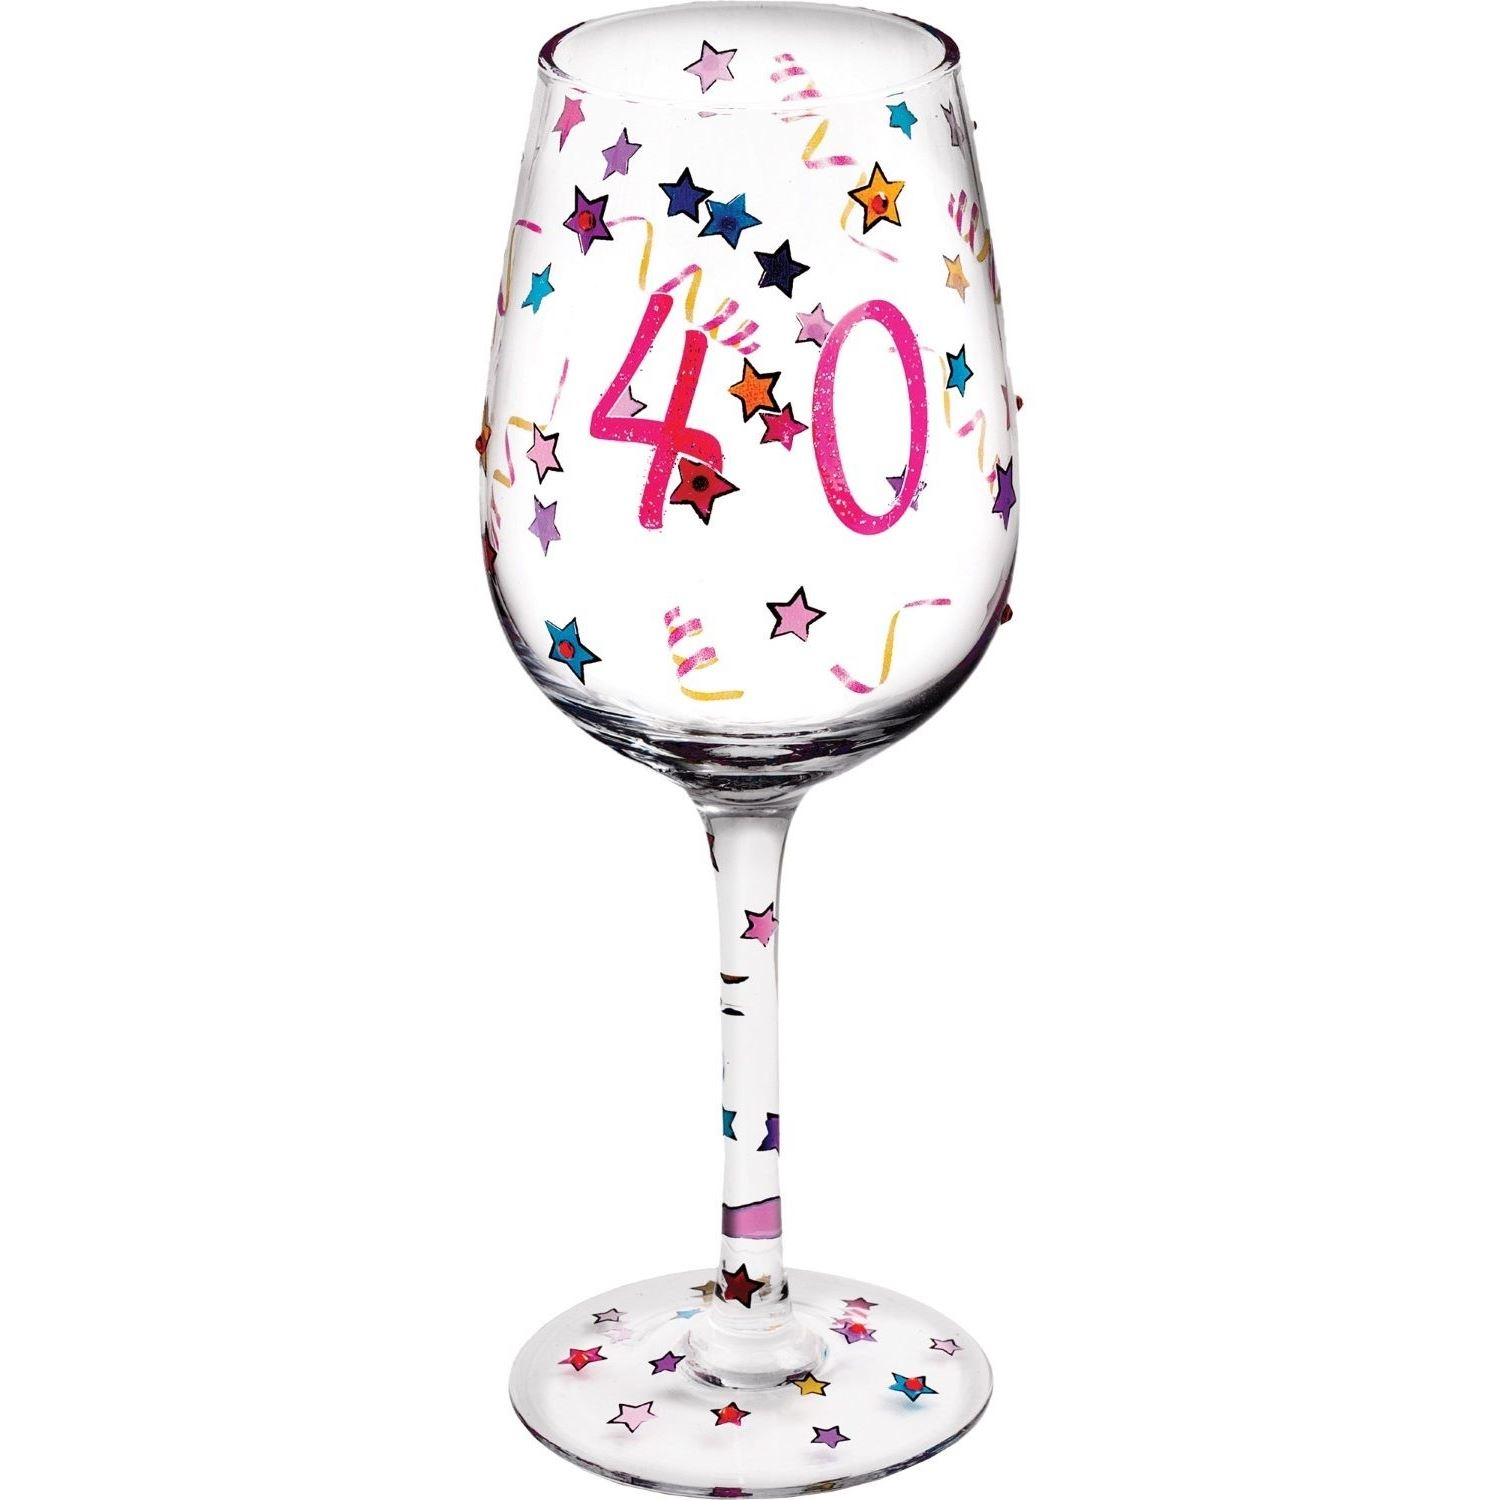 Details About Stars Glitter 40th Birthday Wine Glass Hand Painted Gift Box For Her Women